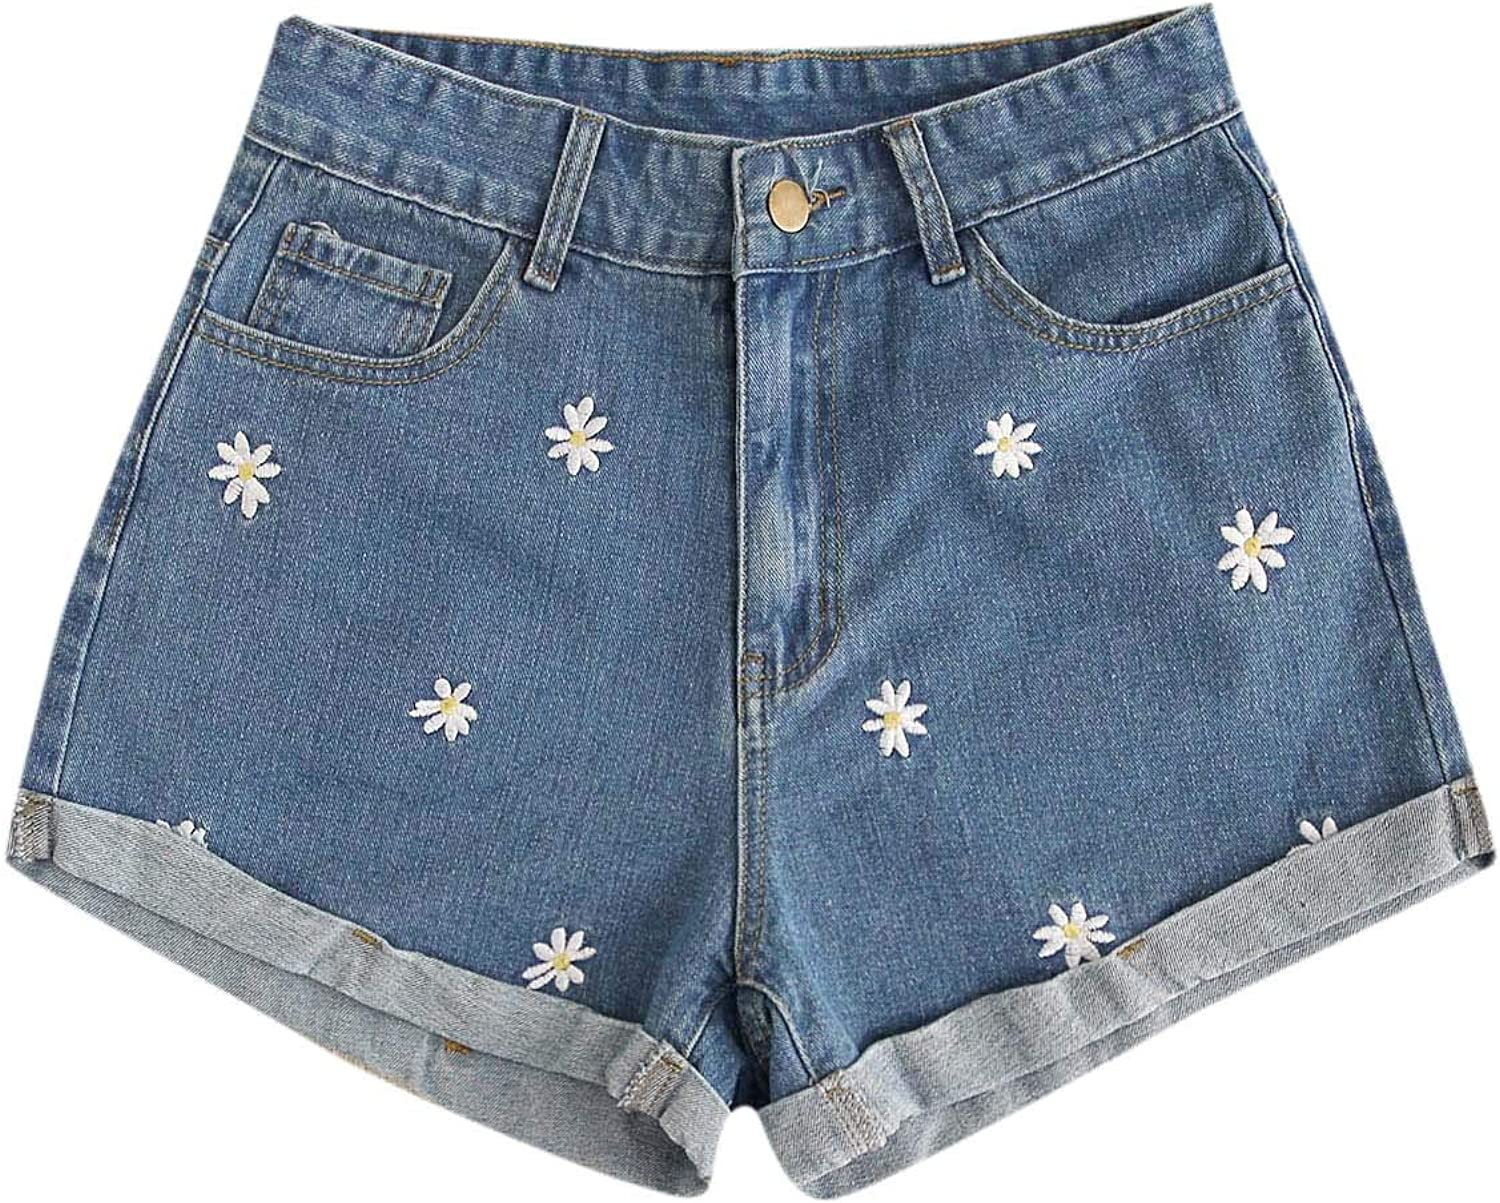 Floerns Women's Floral Embroideried Hemming Denim Shorts with Pockets